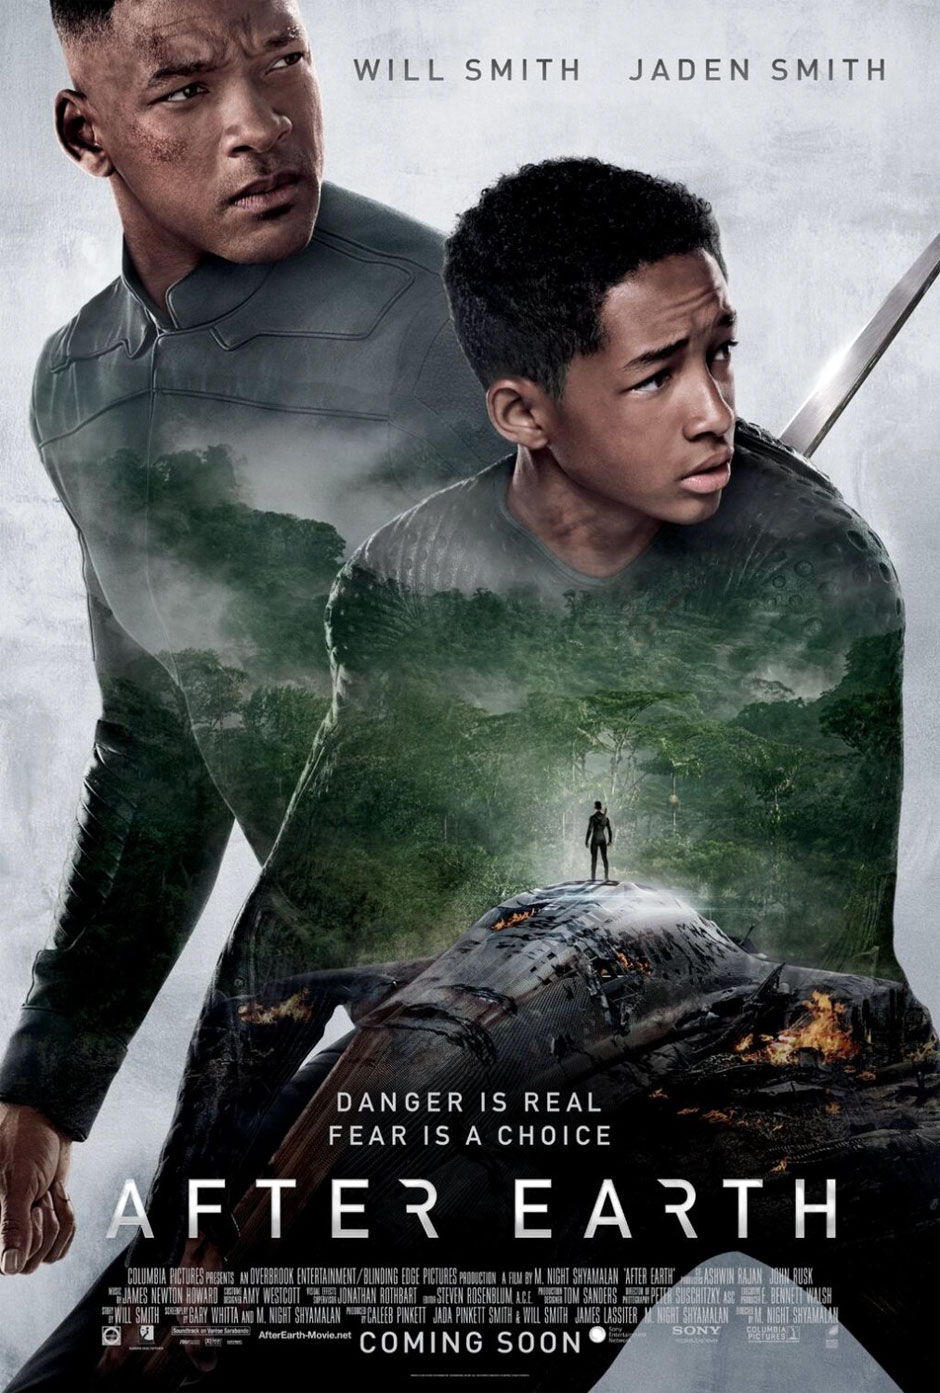 After Earth | Movie review | ColourlessOpinions.com™